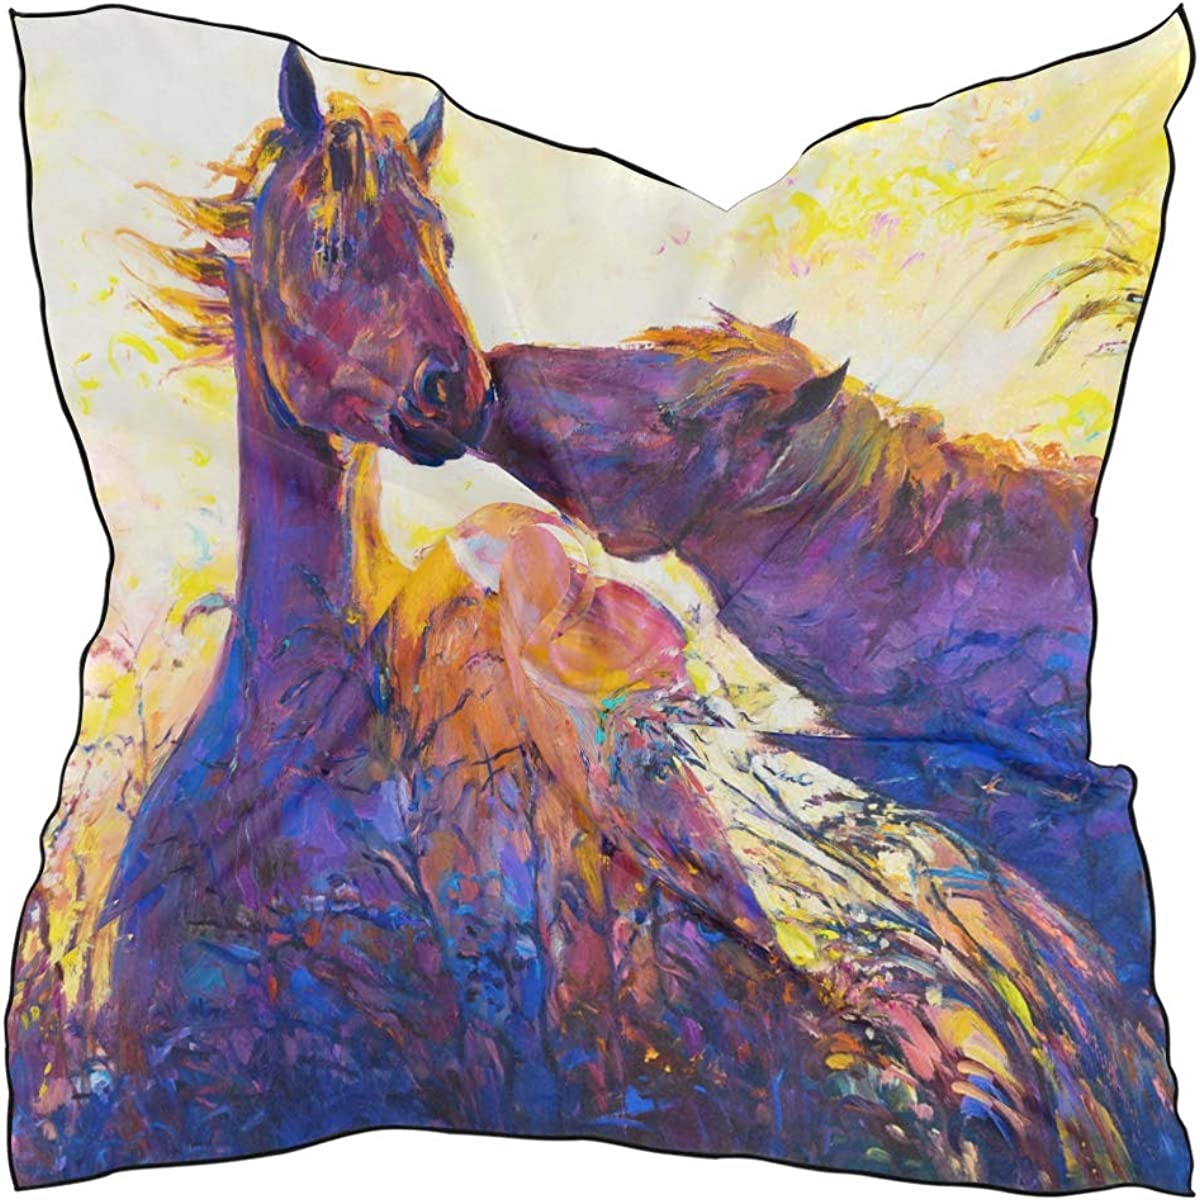 XLING Fashion Square Scarf Watercolor Abstract Animal Horse Paint Lightweight Sunscreen Scarves Muffler Hair Wrap Headscarf Neckerchief for Women Men